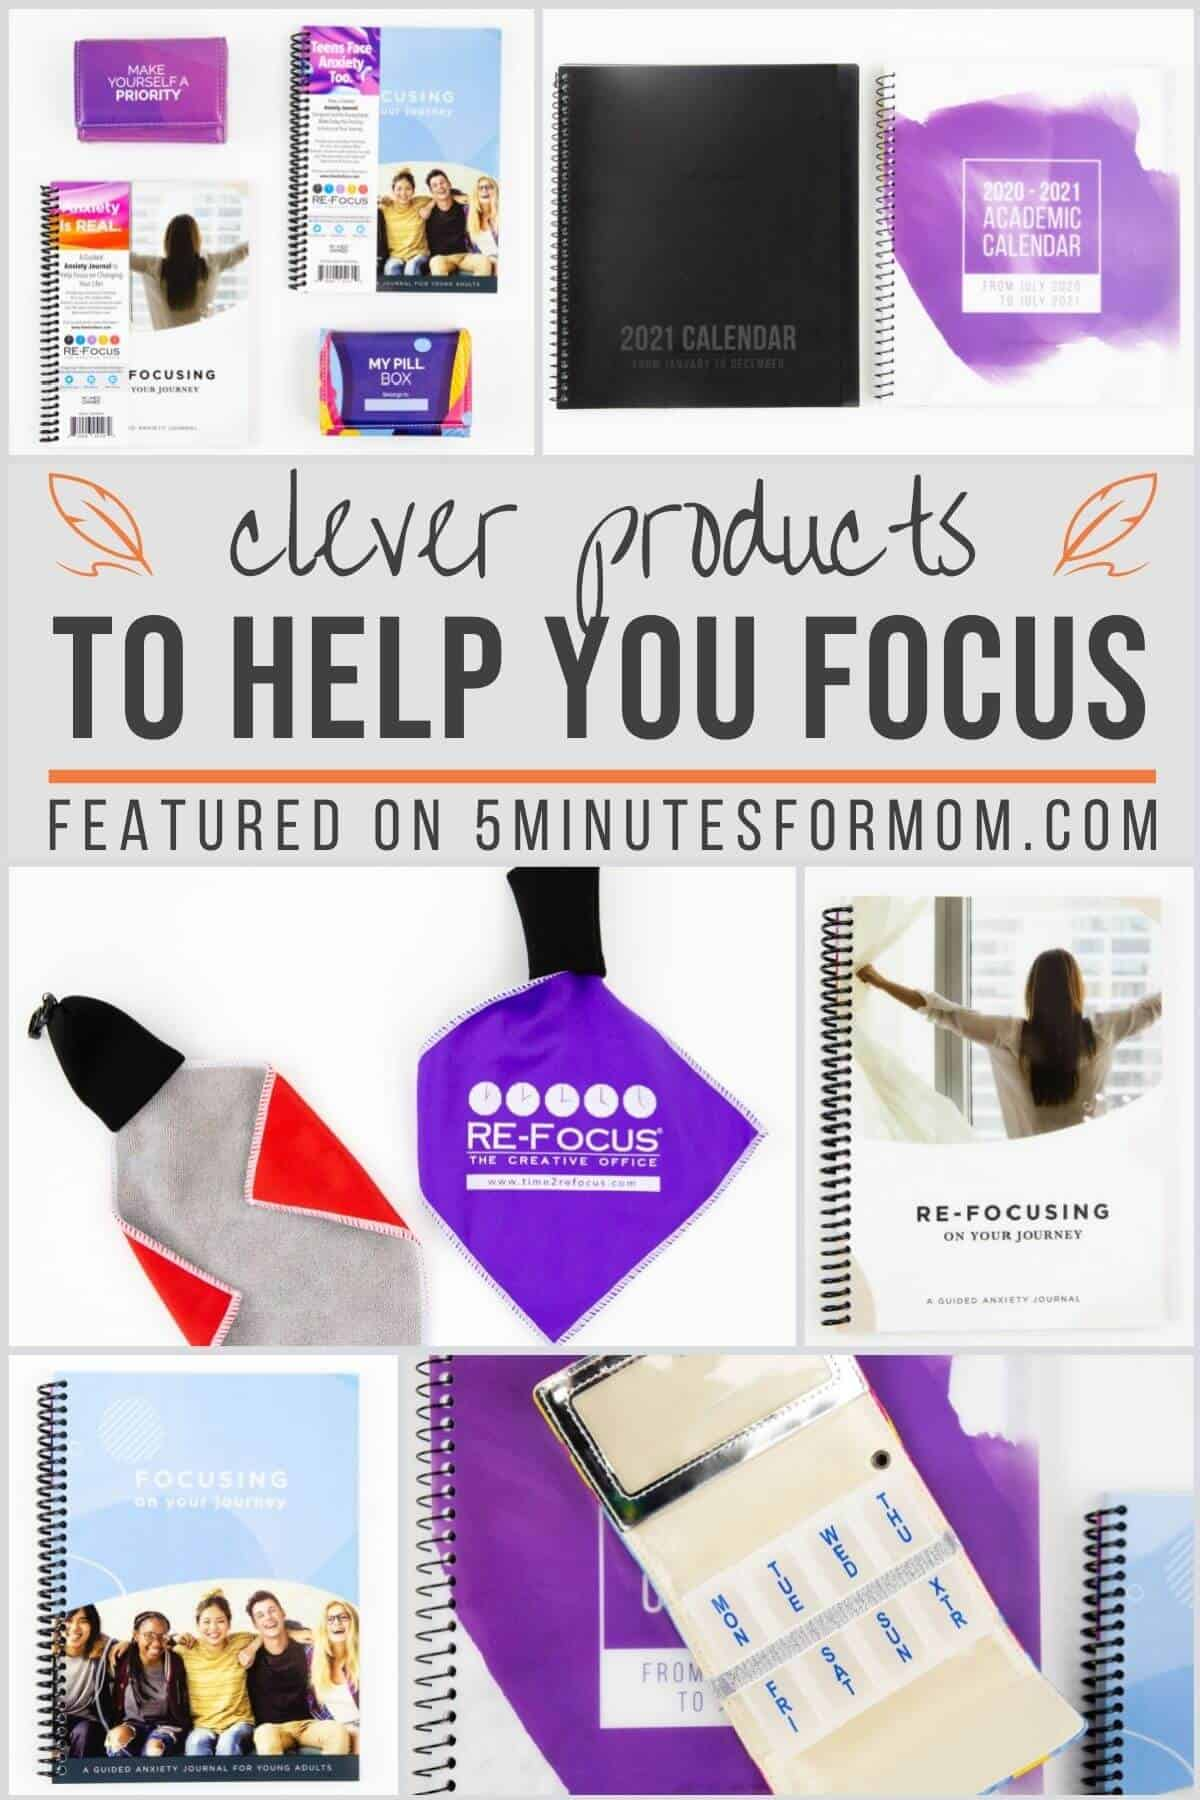 Clever Products to Help You Focus